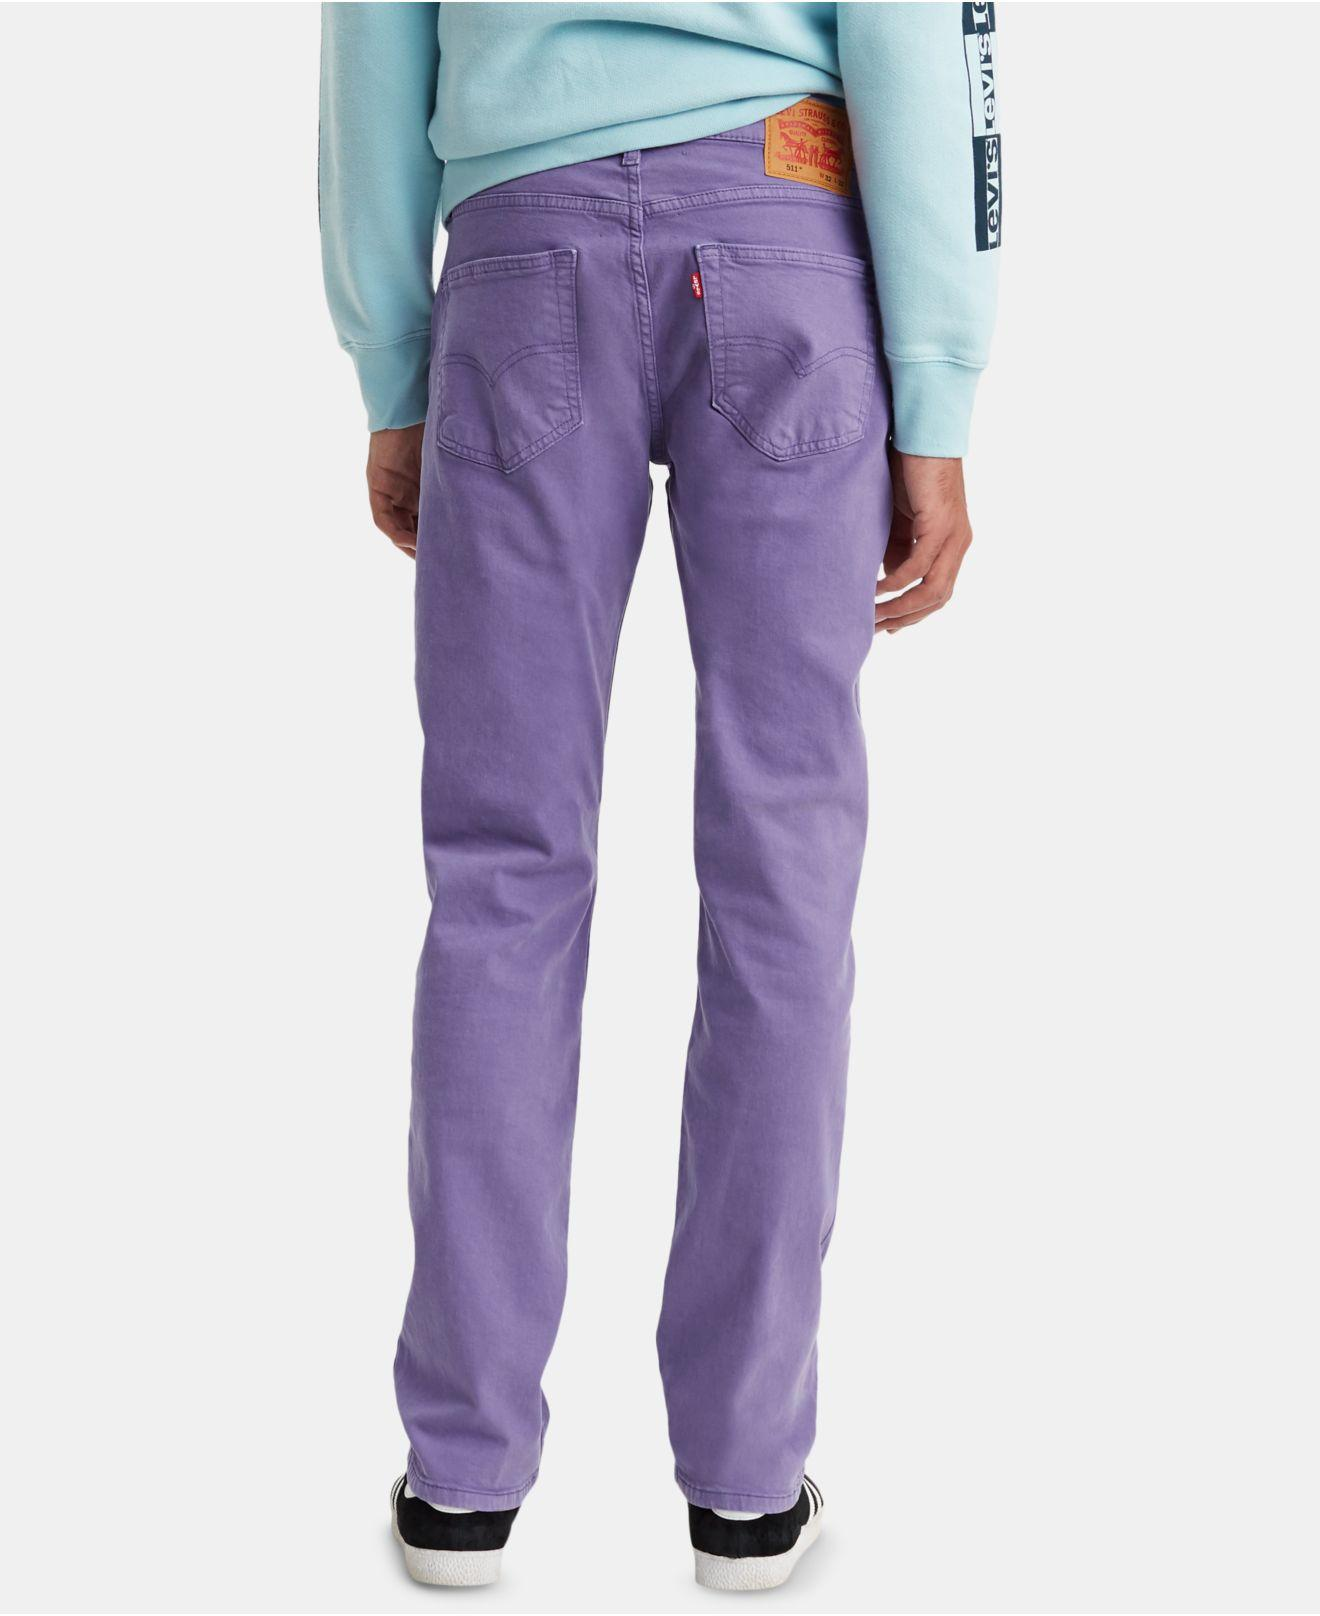 a2193320f4a Lyst - Levi s ® 511tm Slim Fit Colored Jeans in Purple for Men